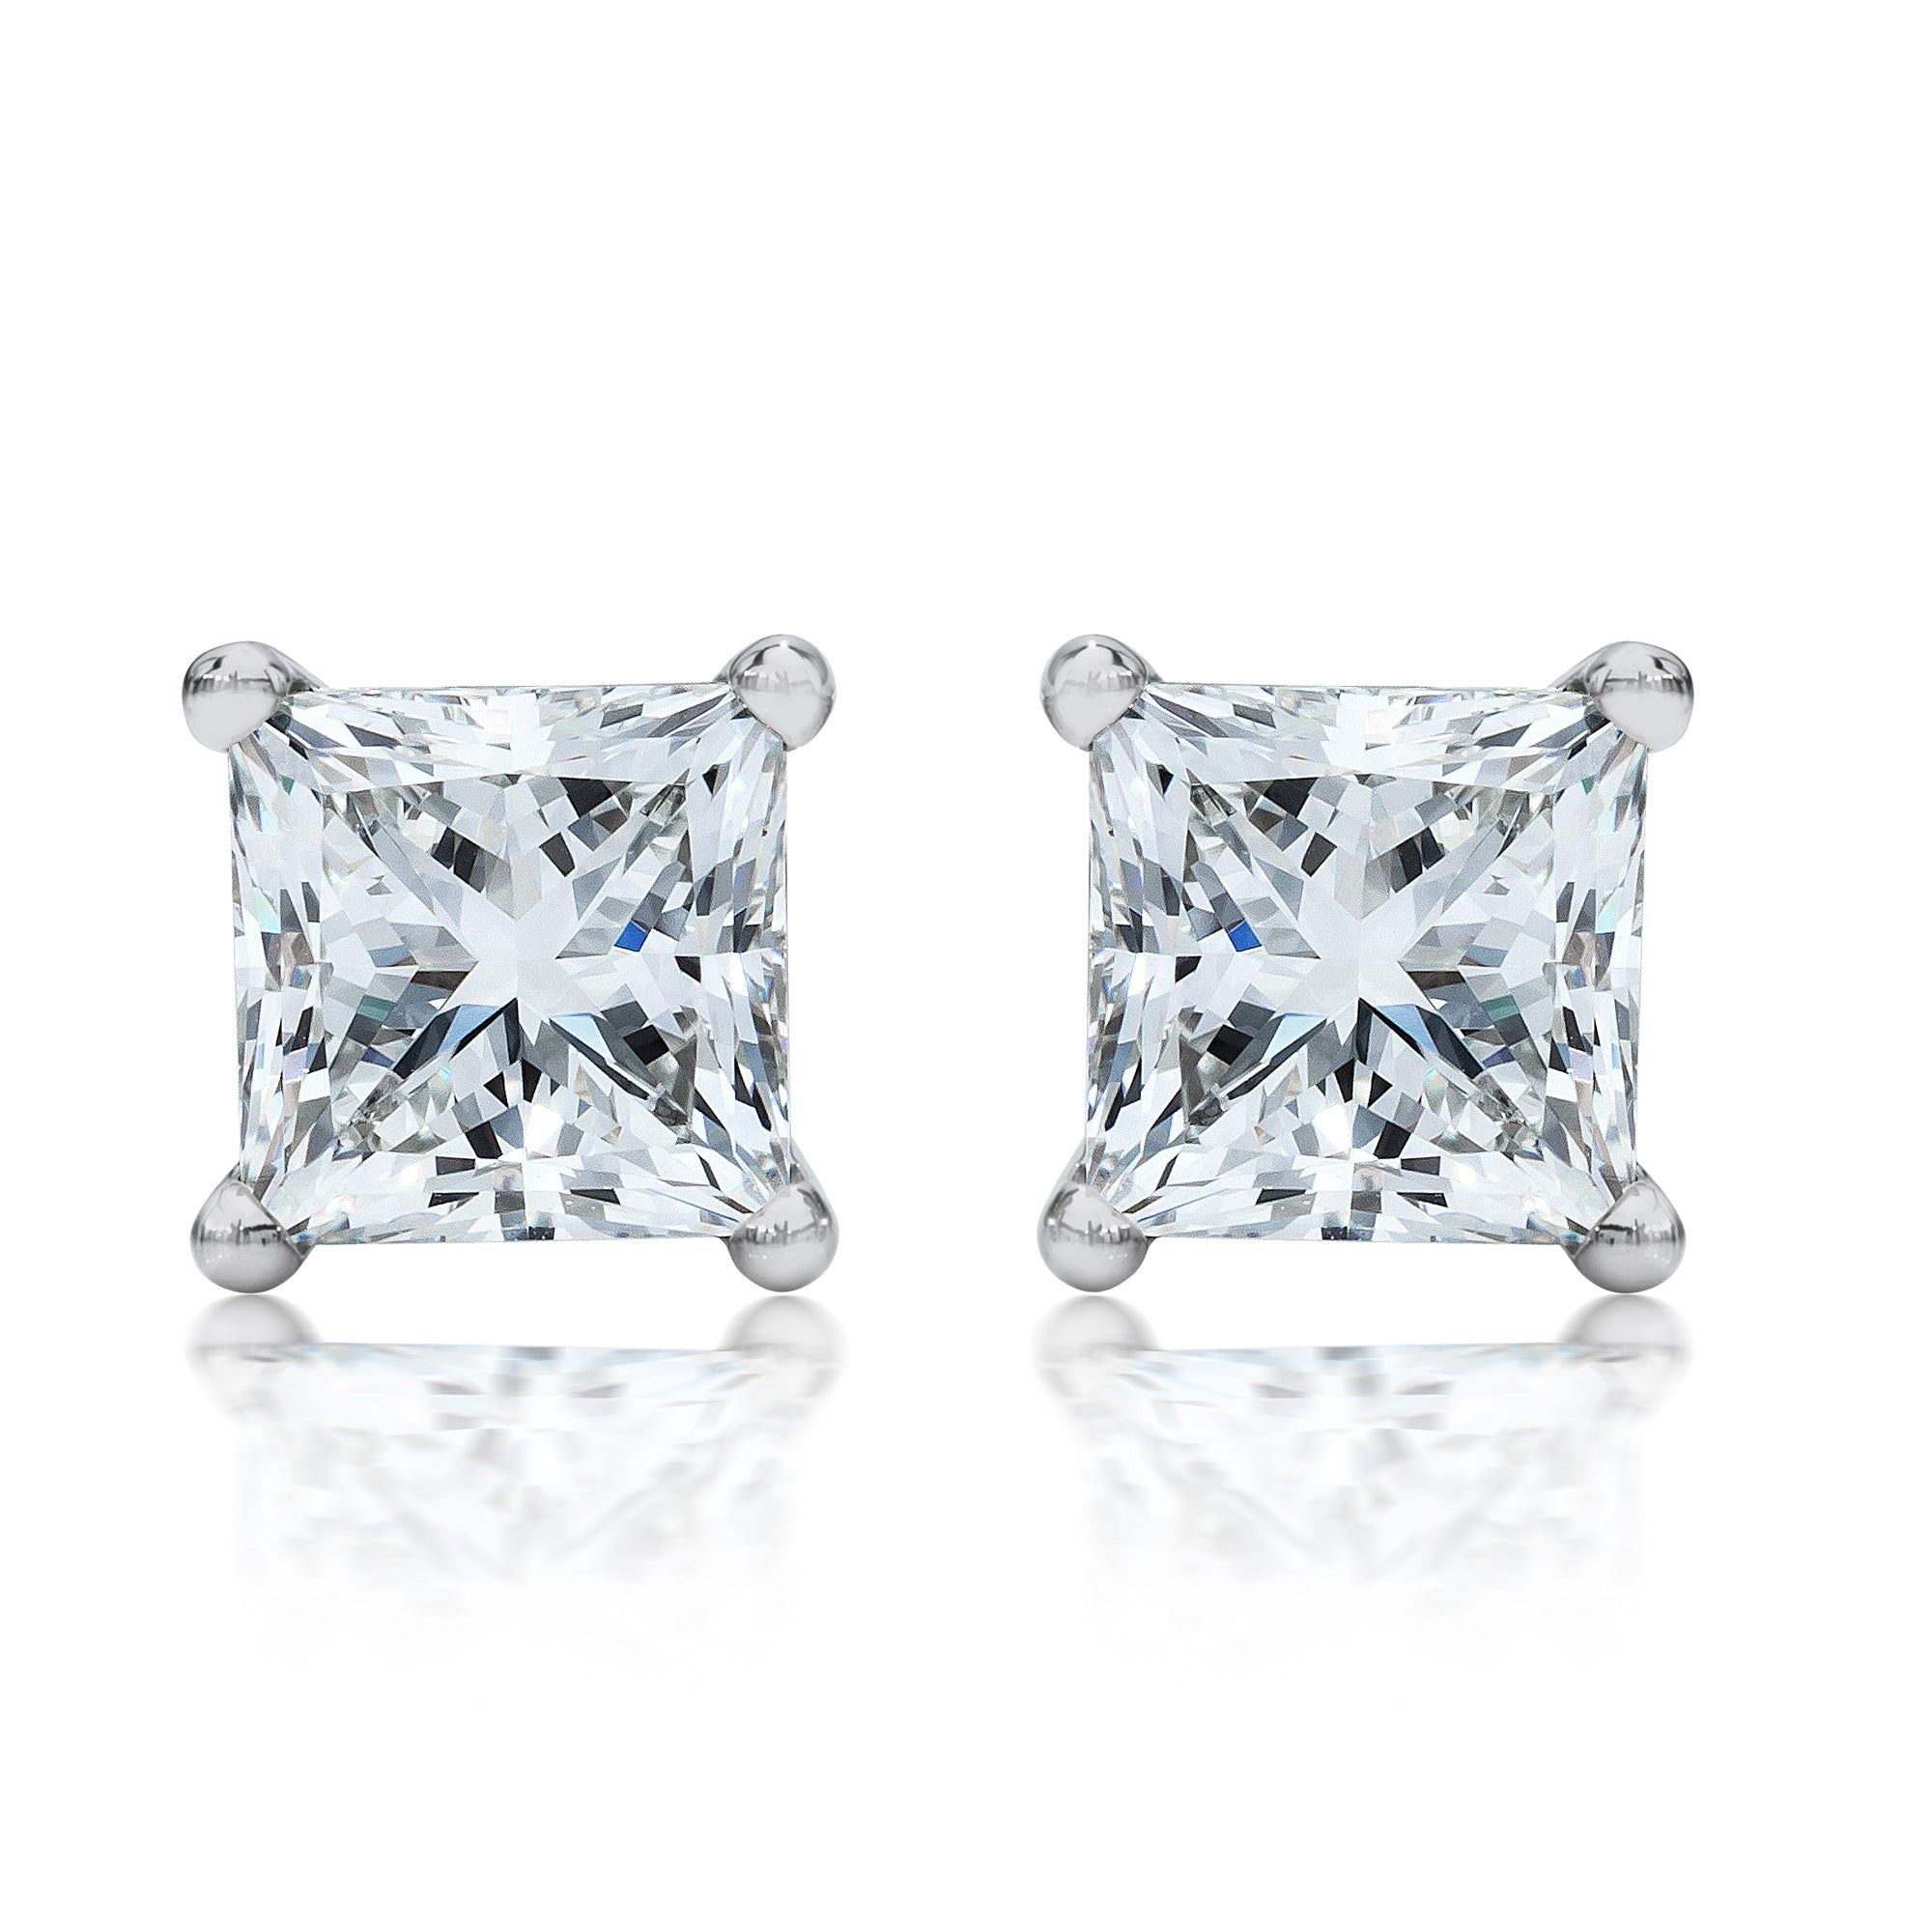 web en product solitaire diamond studs engelbert earrings